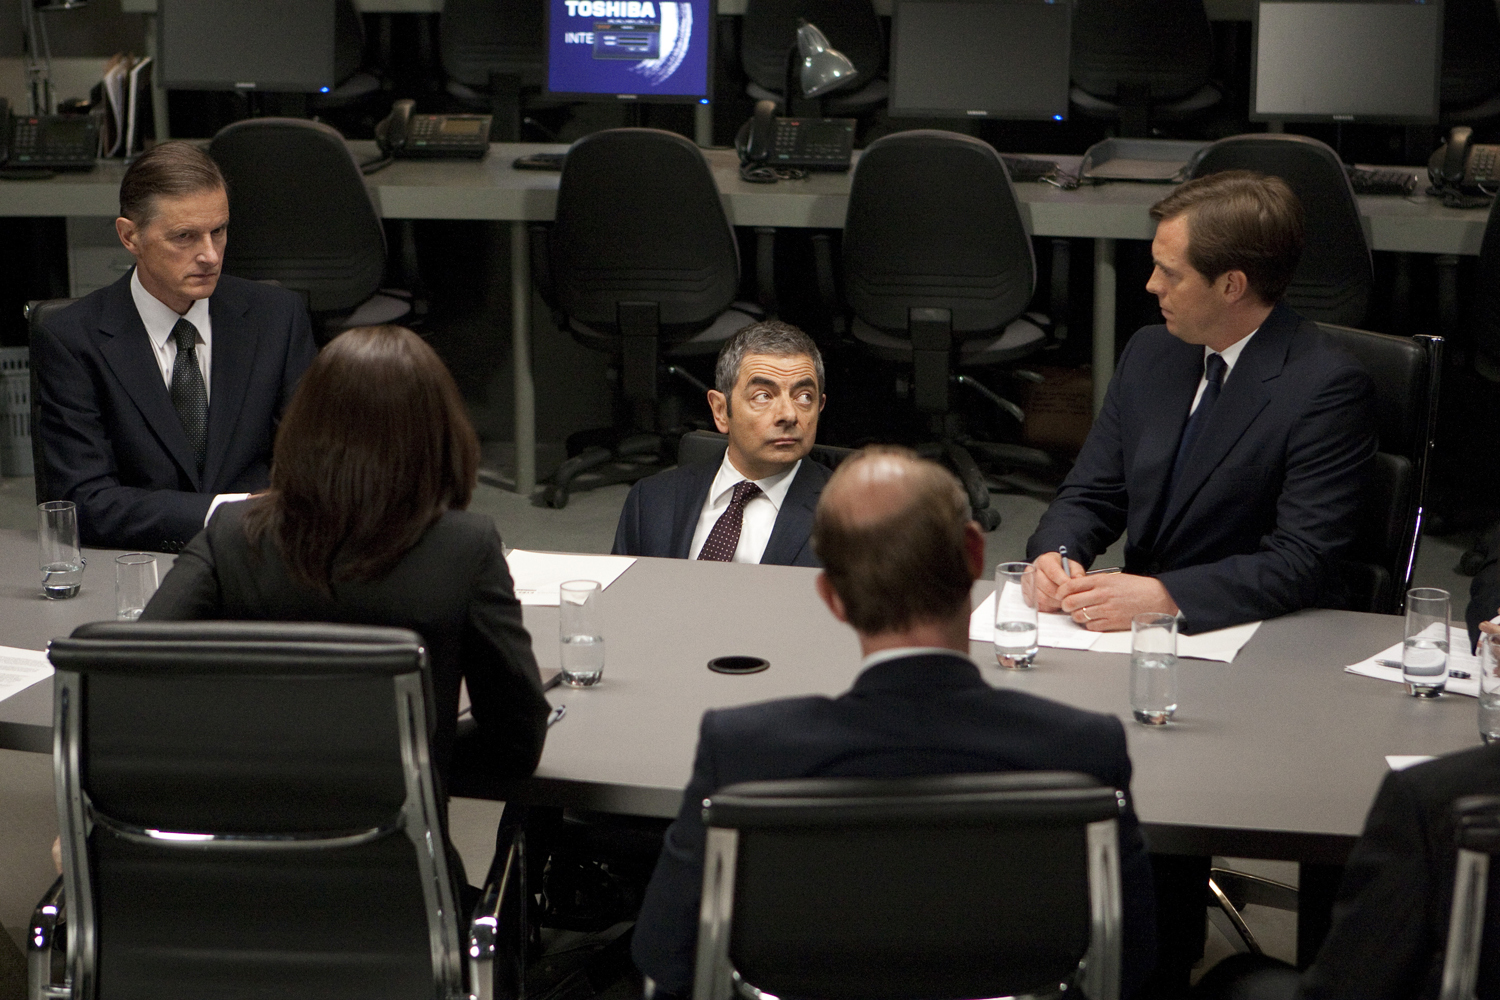 Rowan Atkinson in Johnny English Reborn (2011)